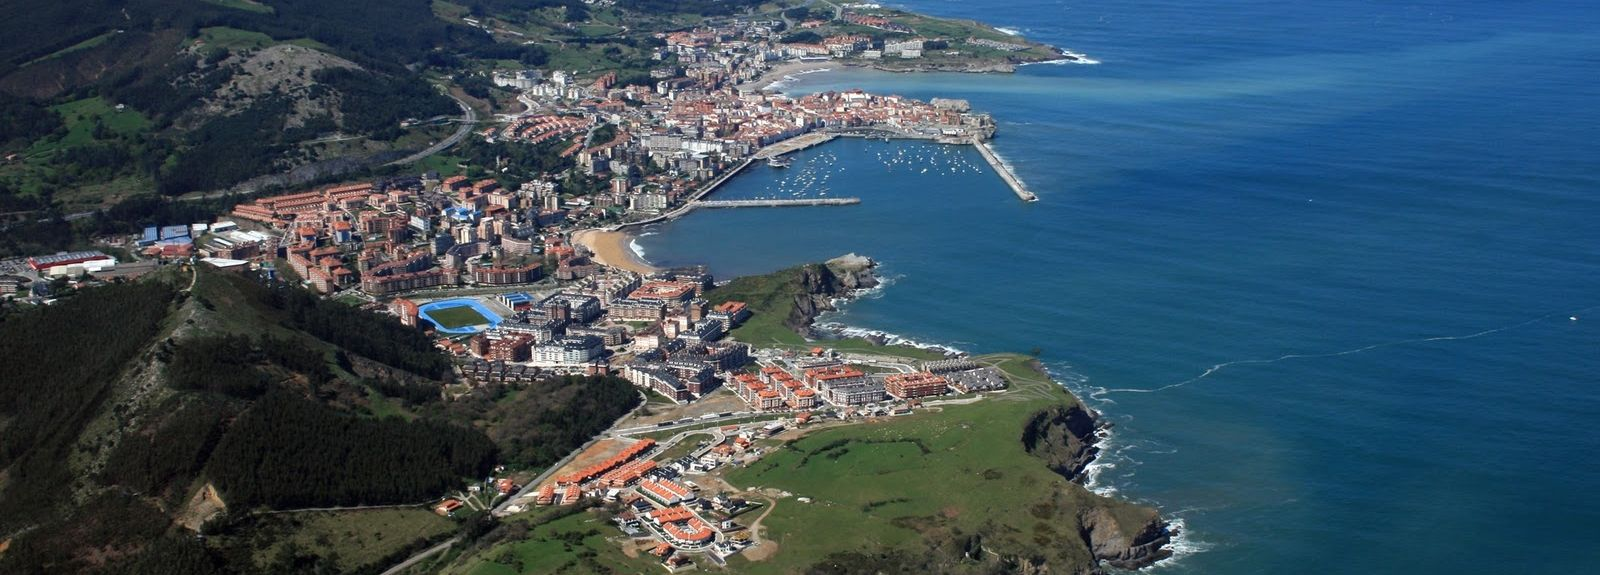 Bilboaldea, Basque Country, Spain